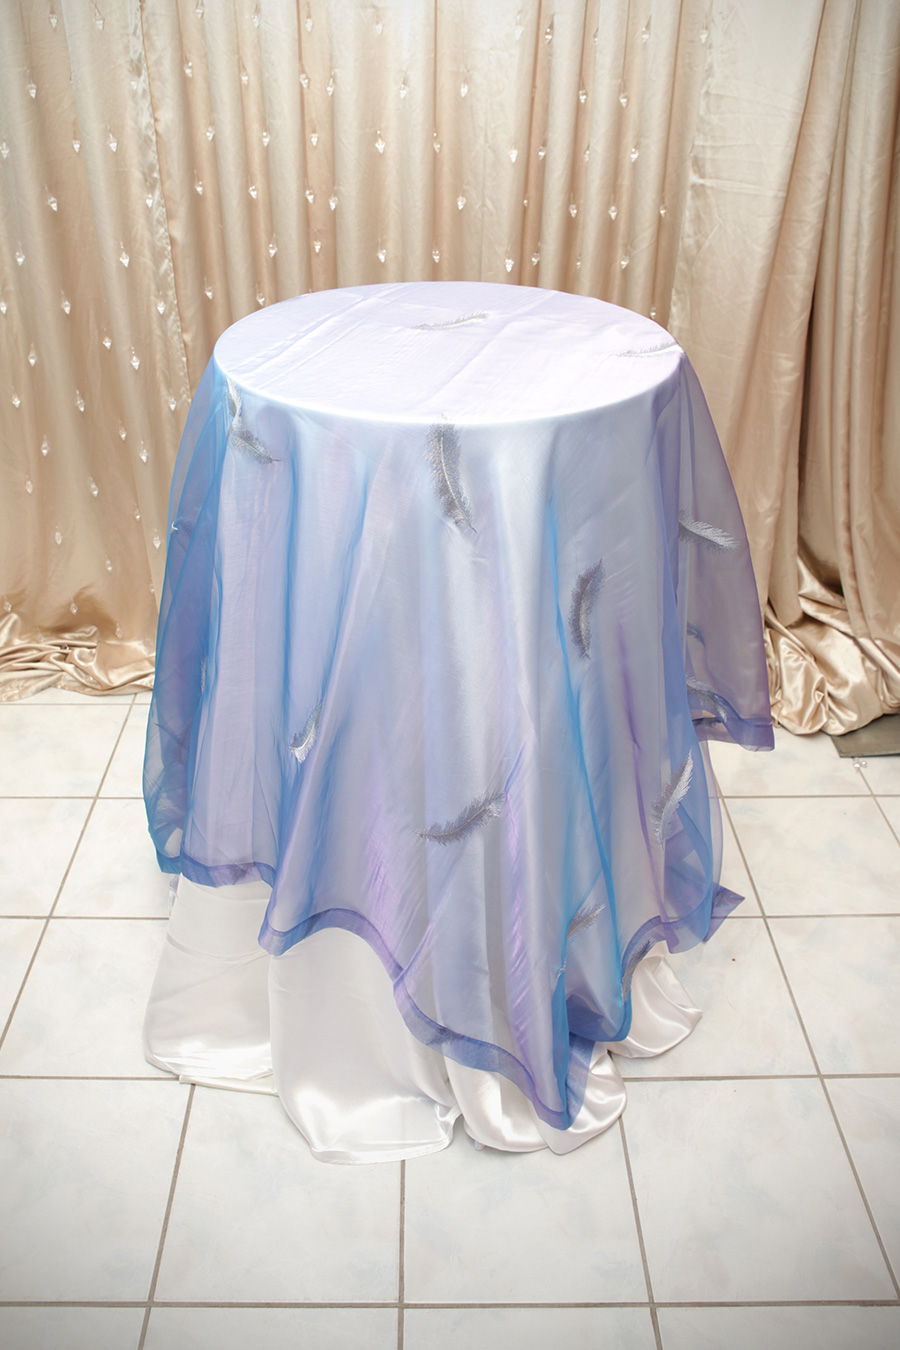 Sheer Overlay Table Cover Blue With Silver Feather